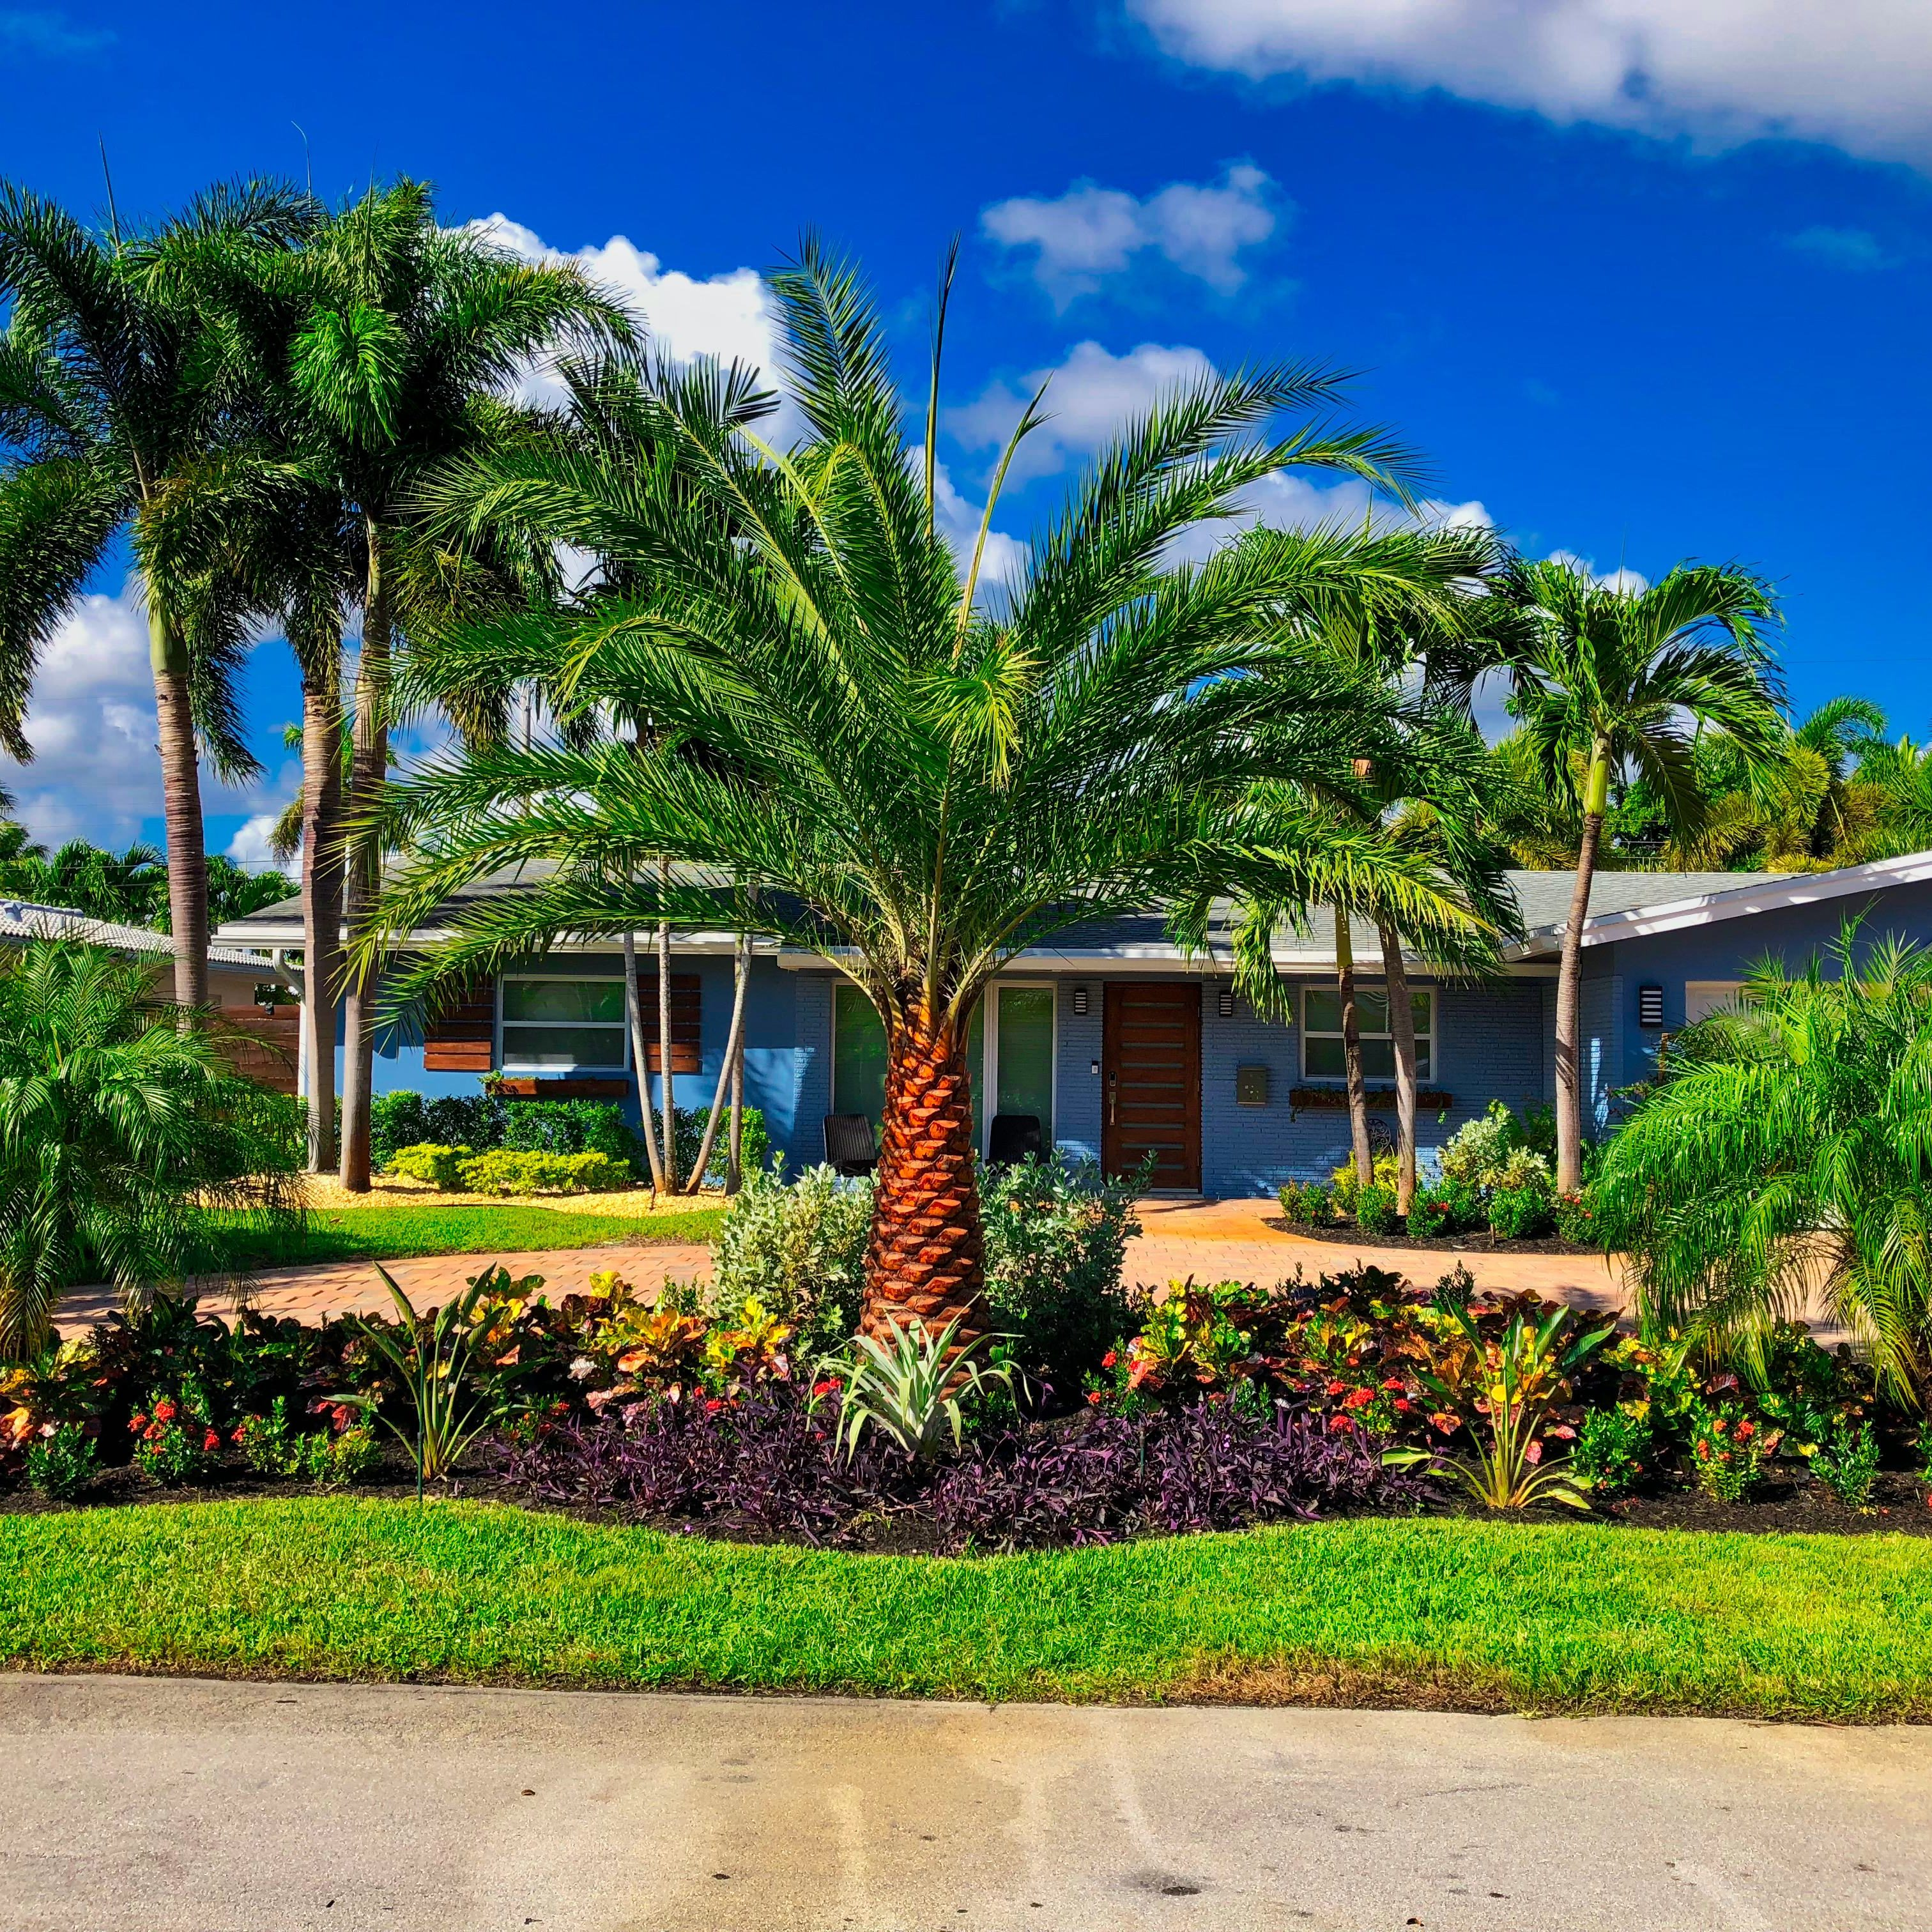 Sj Landscapes And Gardening Services: Residential Landscaping Company